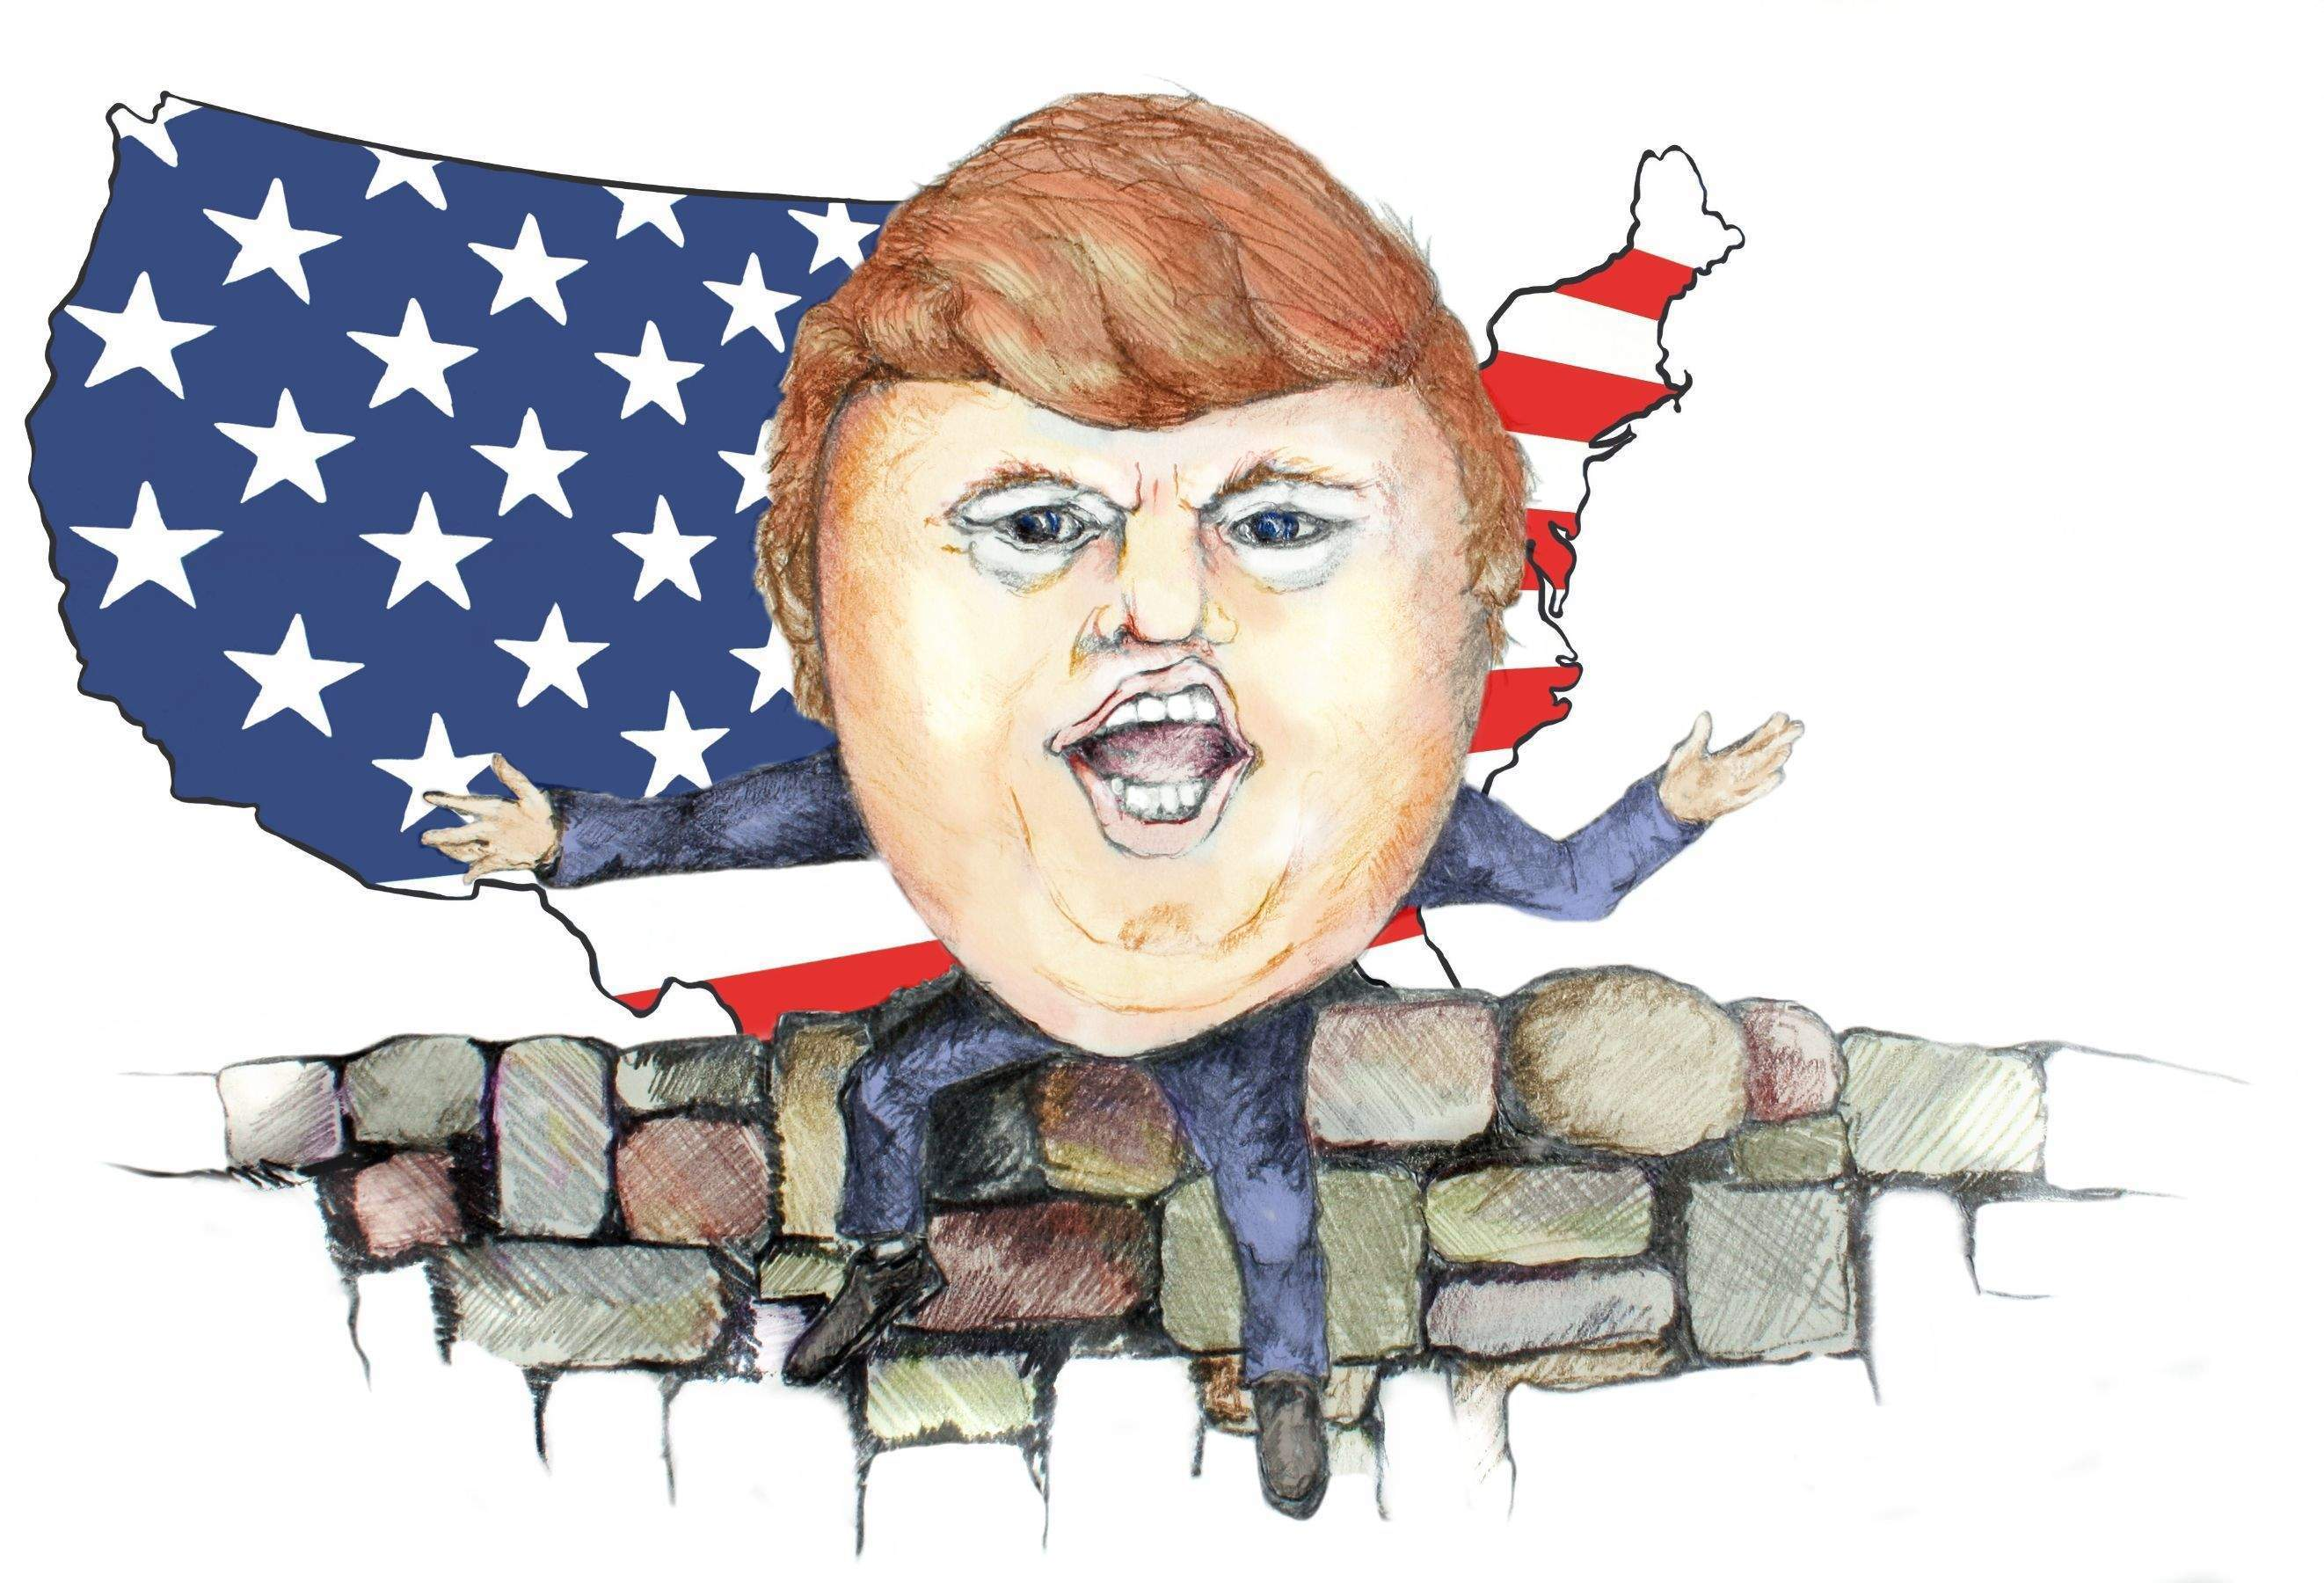 Brick by brick, Donald Trump's wall will destroy the environment